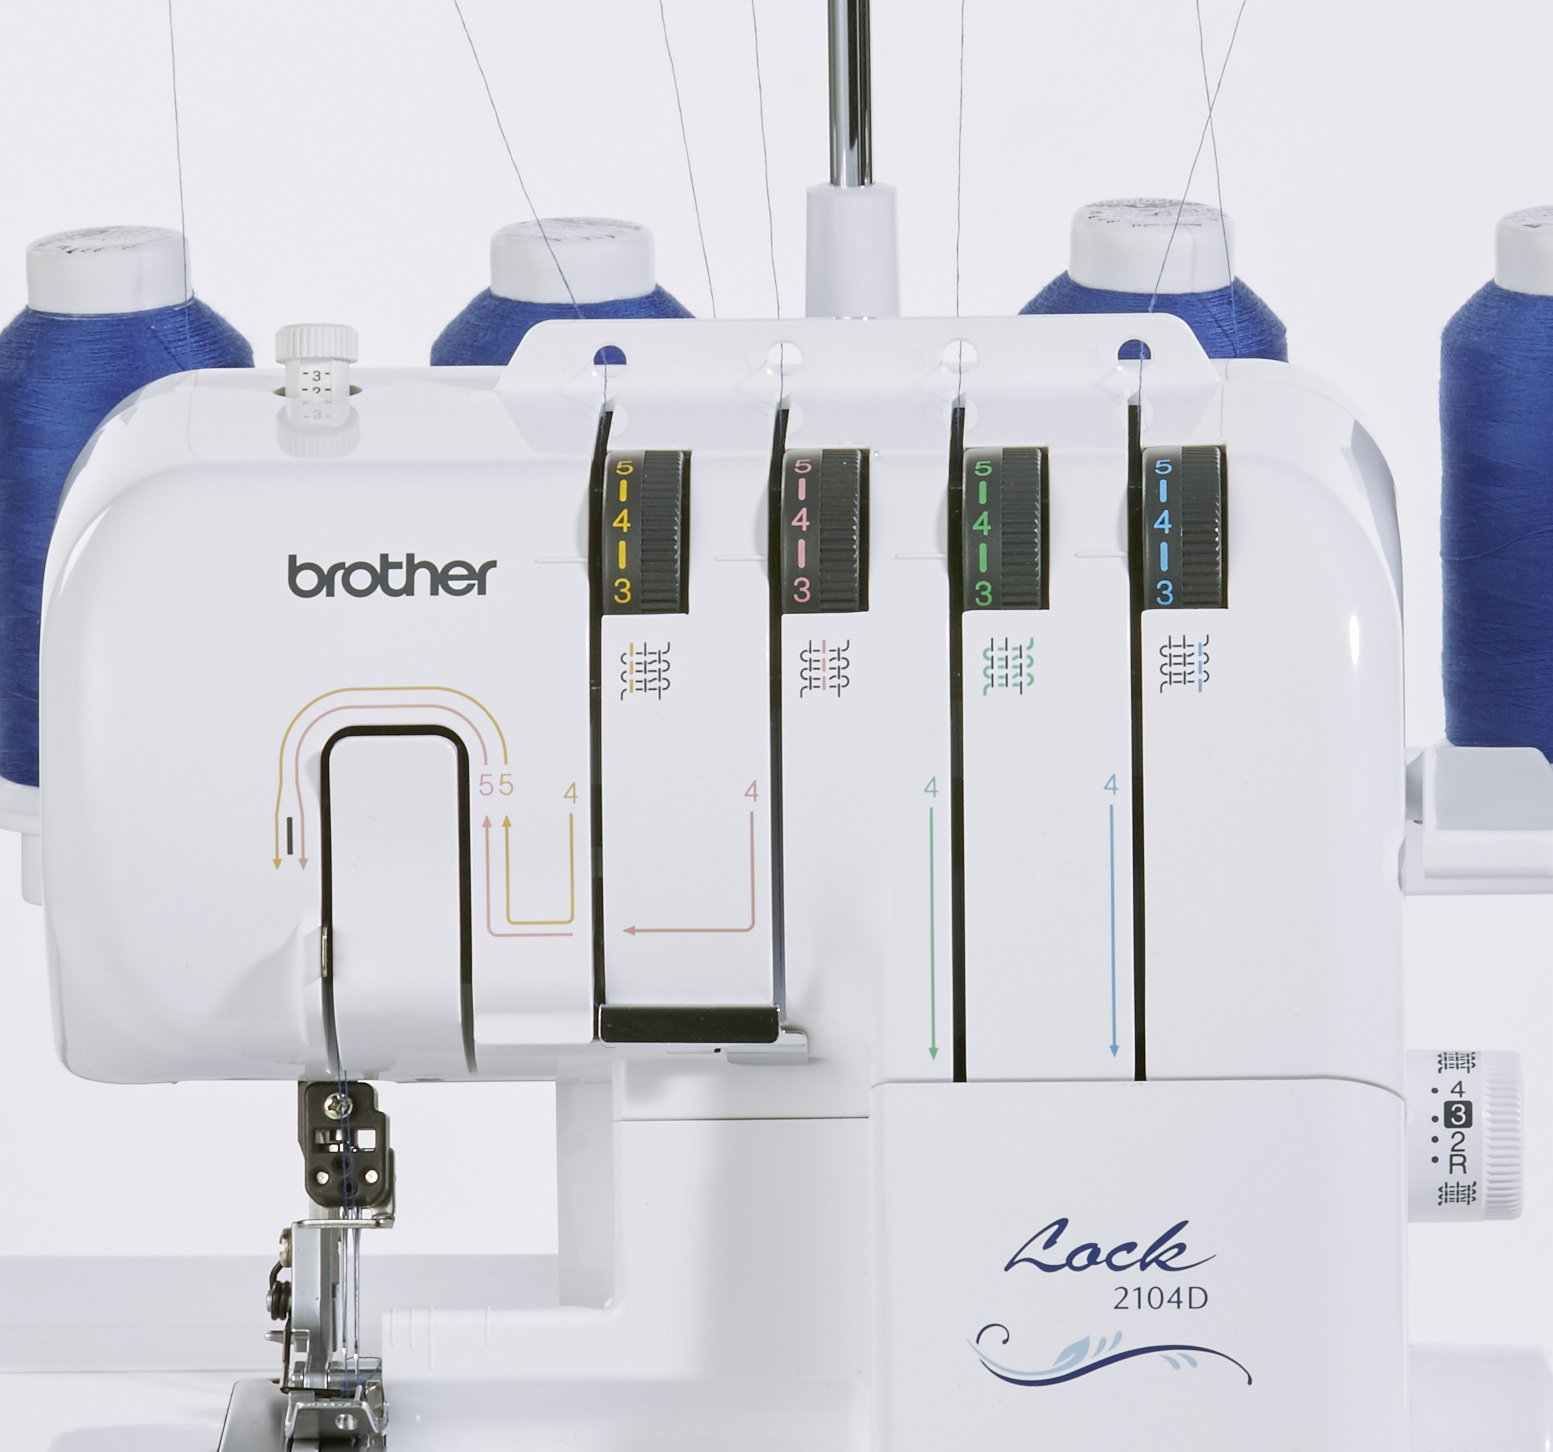 BROTHER NEW 2104D OVERLOCKER Includes Feet worth £80 FREE Express Delivery